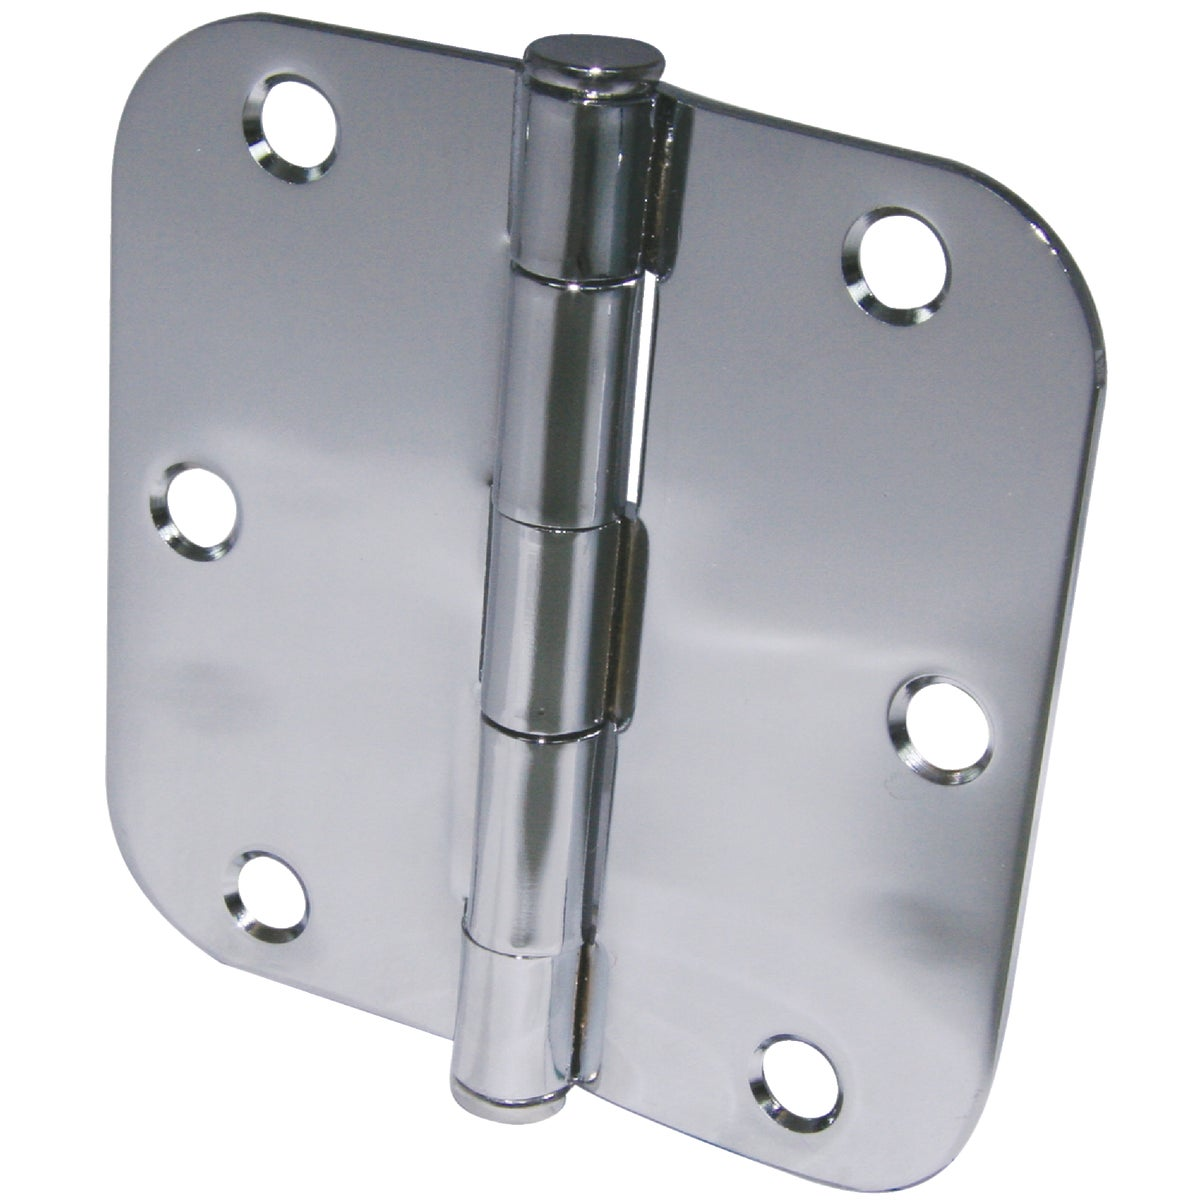 "3.5"" 5/8RAD PC 3PK HINGE - 61744 by Ultra Hardware"